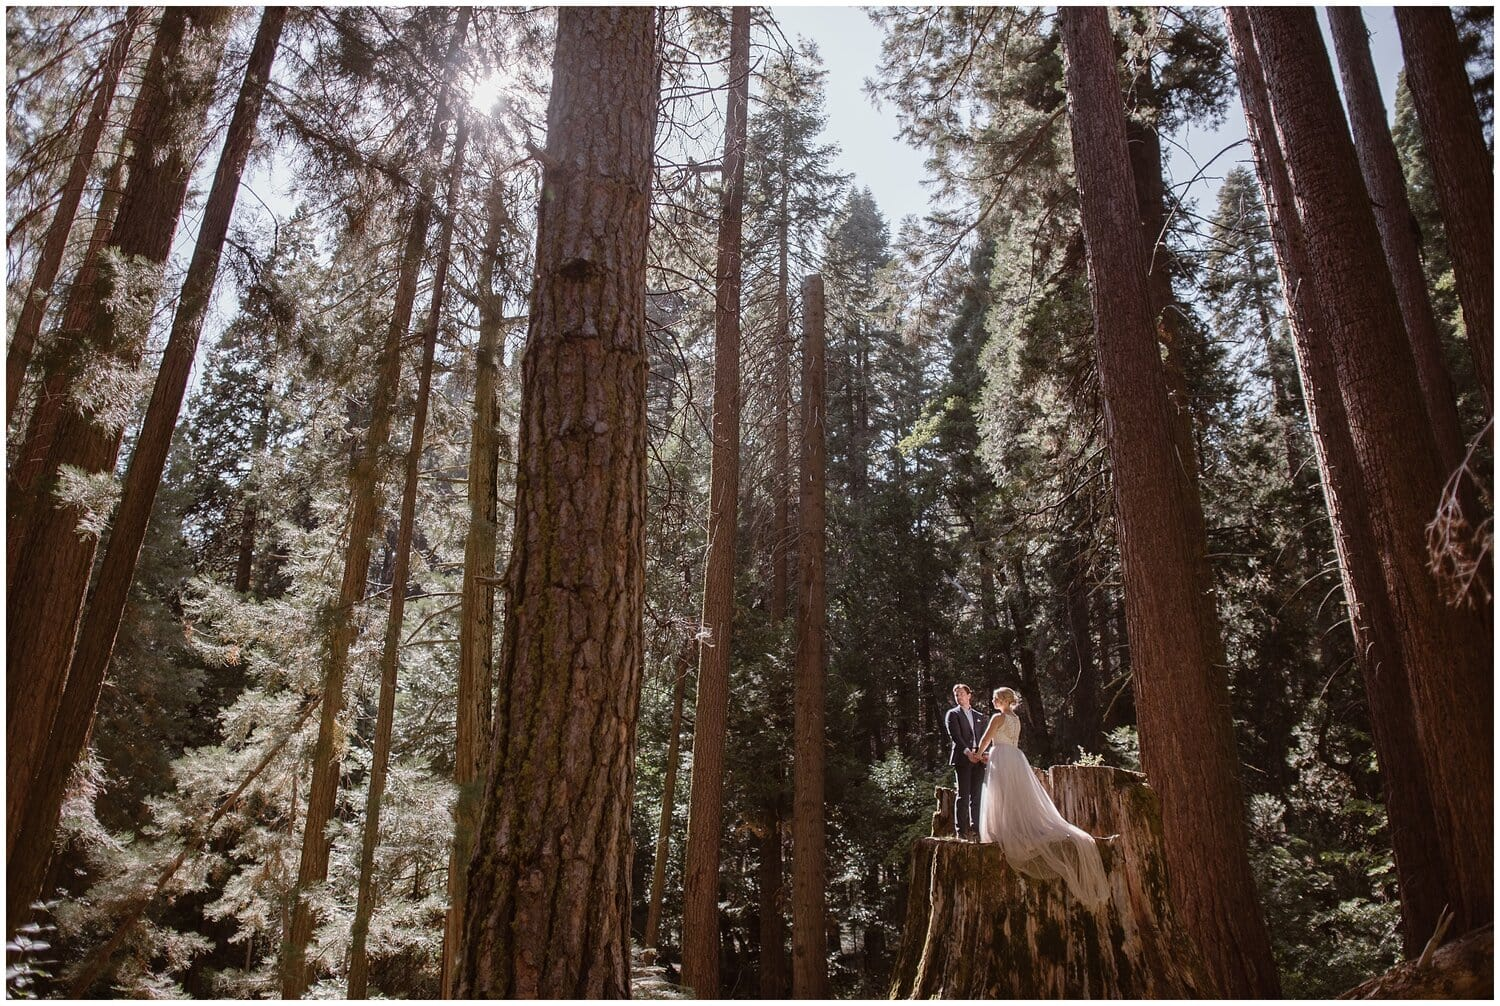 Bride and groom stand on a big tree stump at Yosemite National Park.